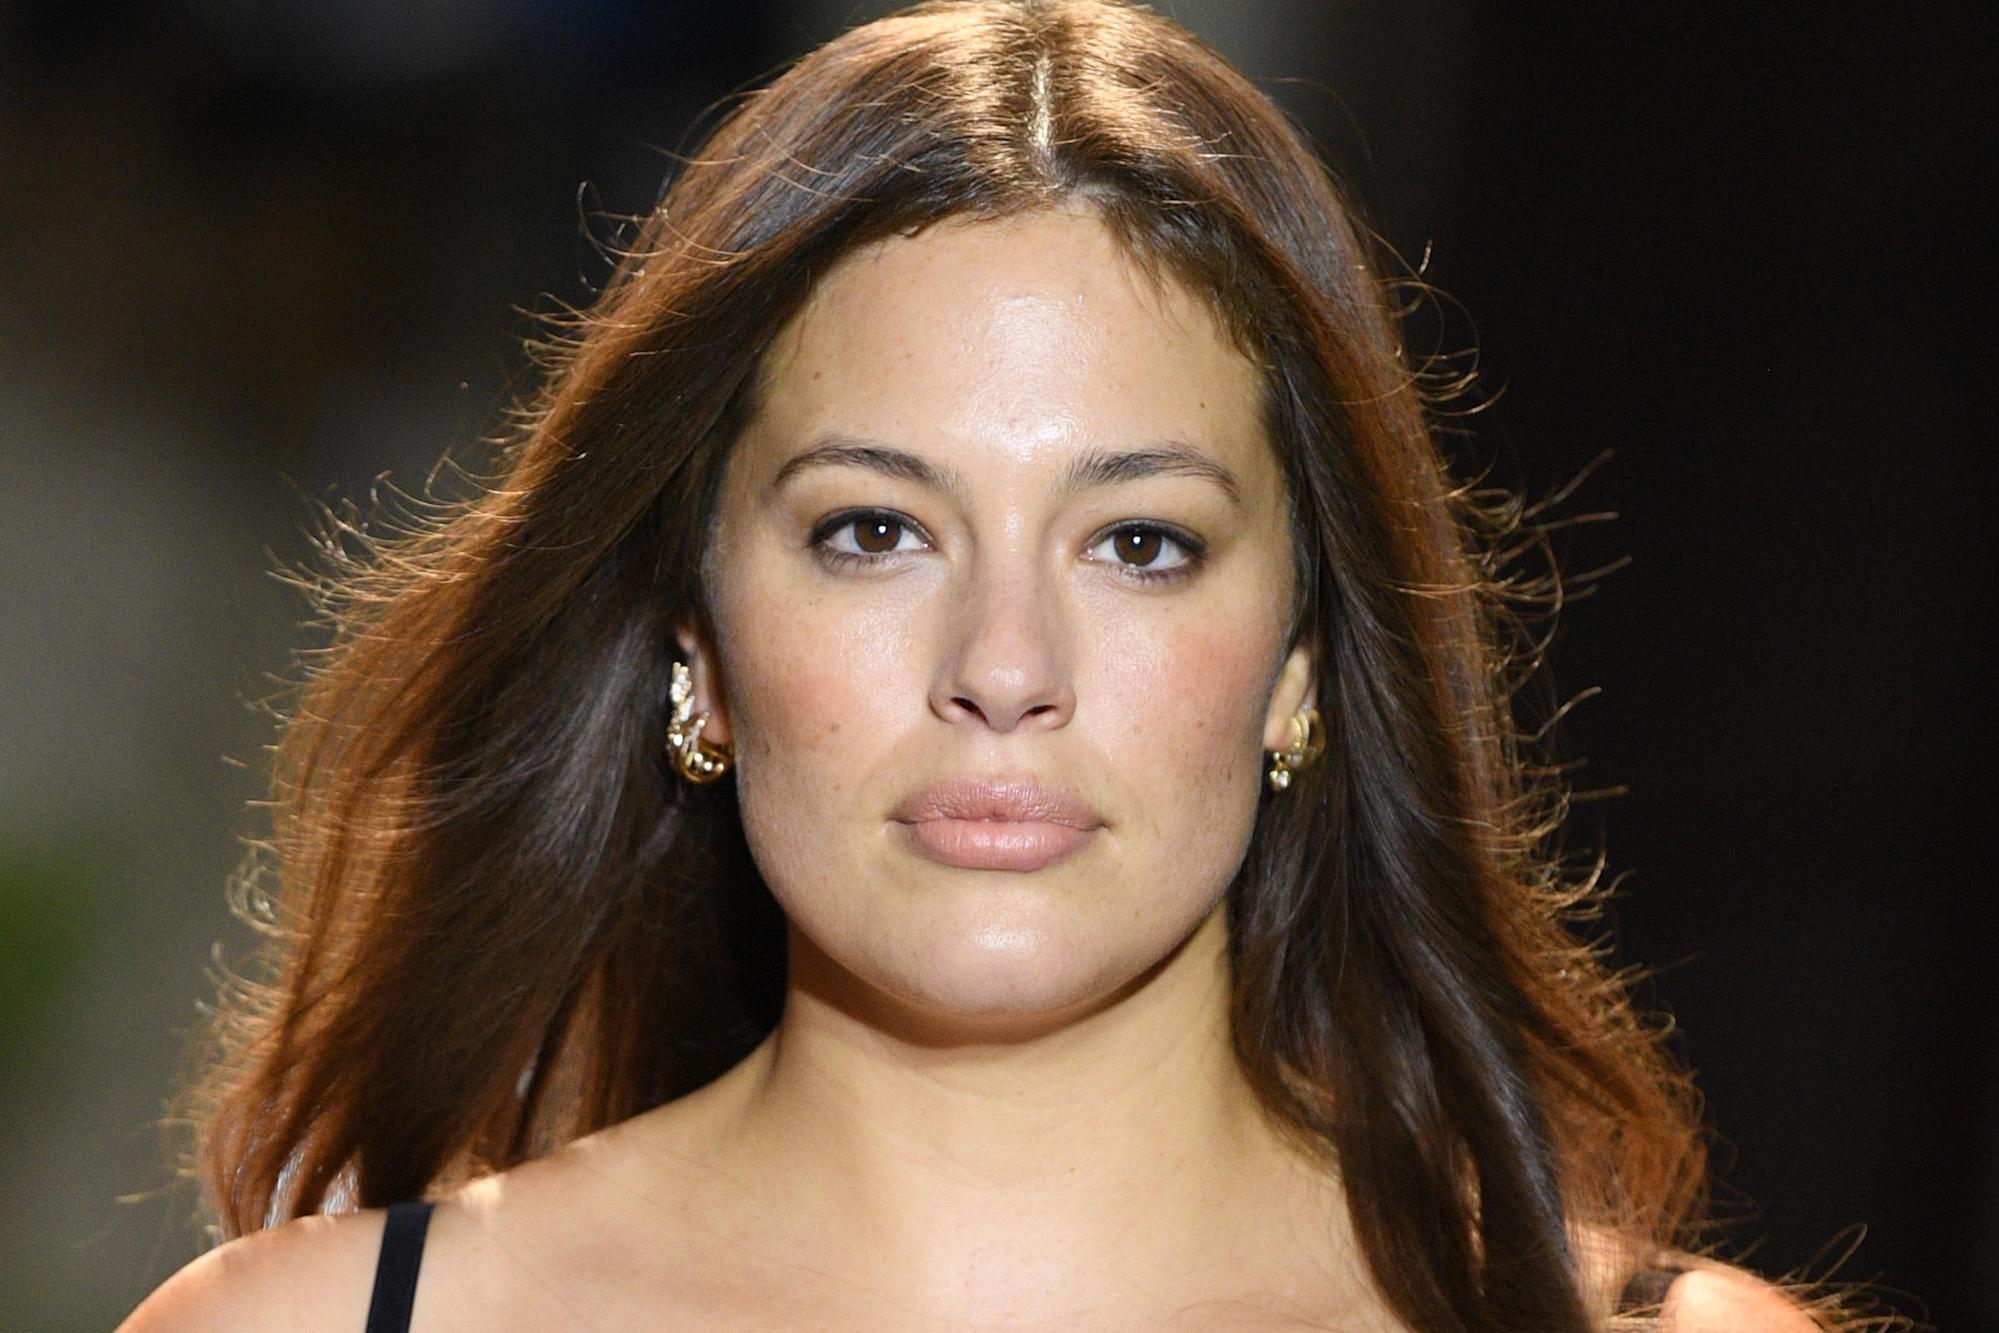 Ashley Graham Nude Stretch Marks Photo Is Her First Post